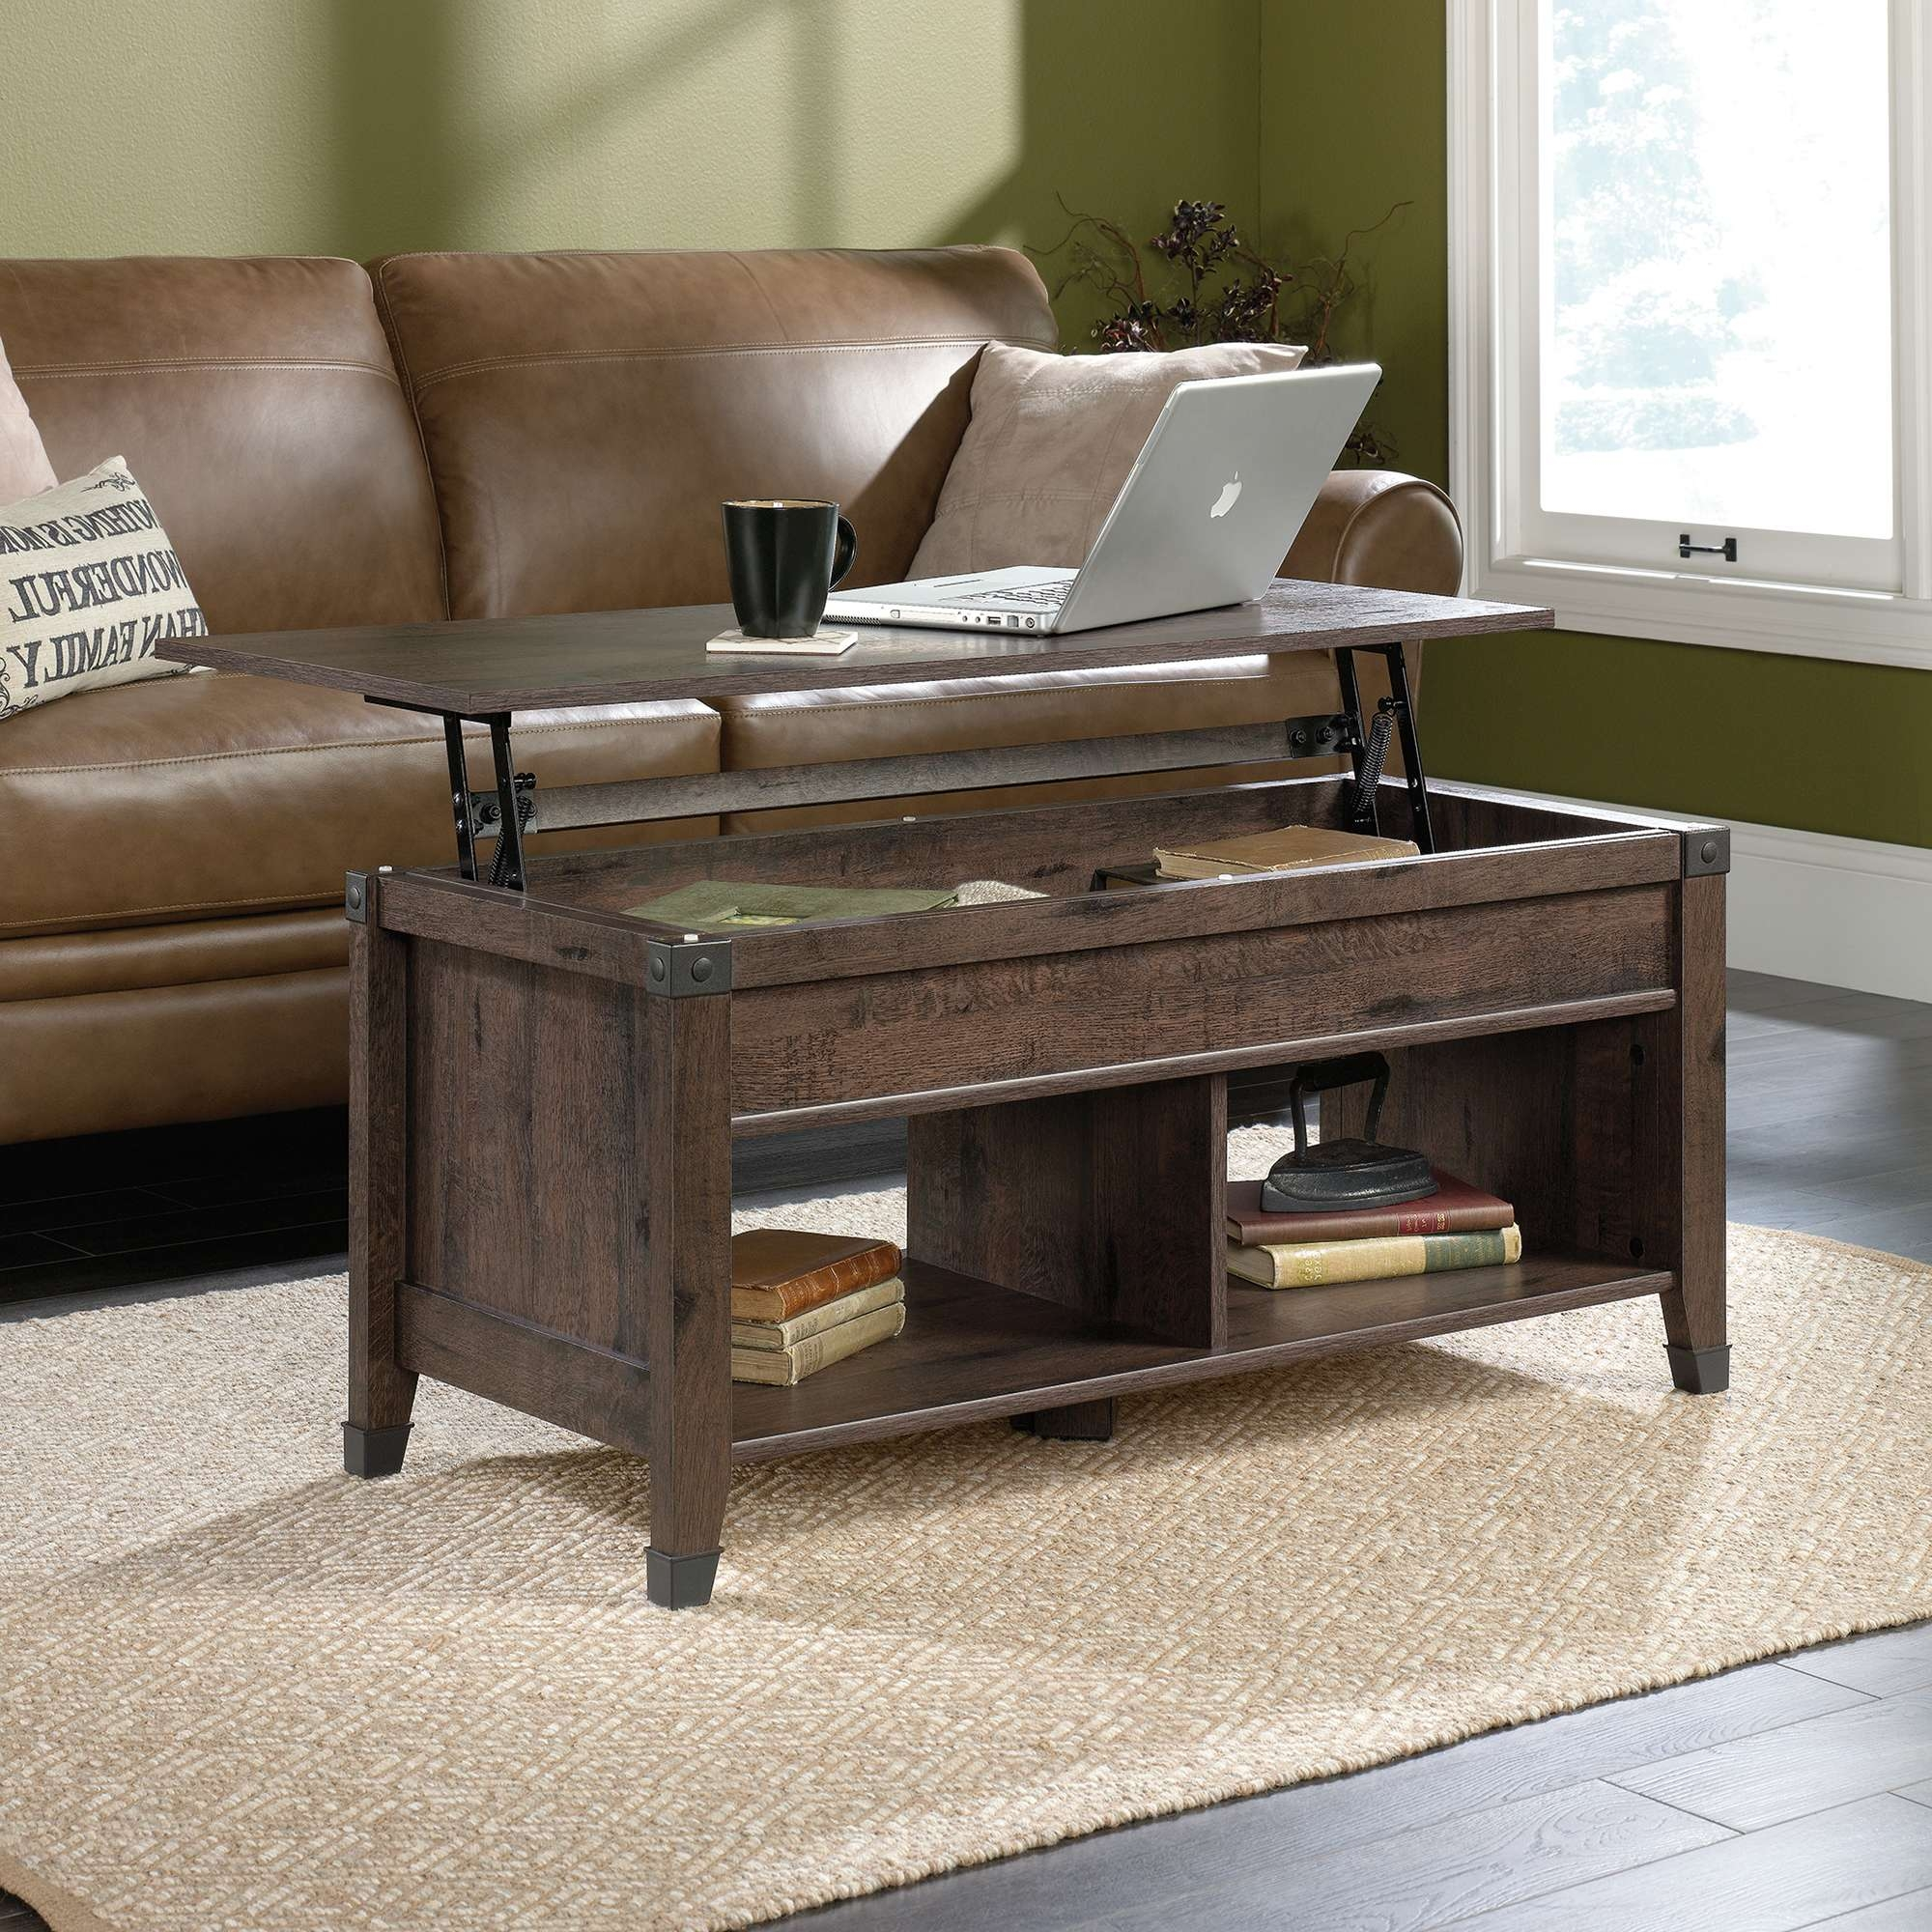 Sauder With Regard To Fashionable Coffee Table With Raised Top (View 14 of 20)